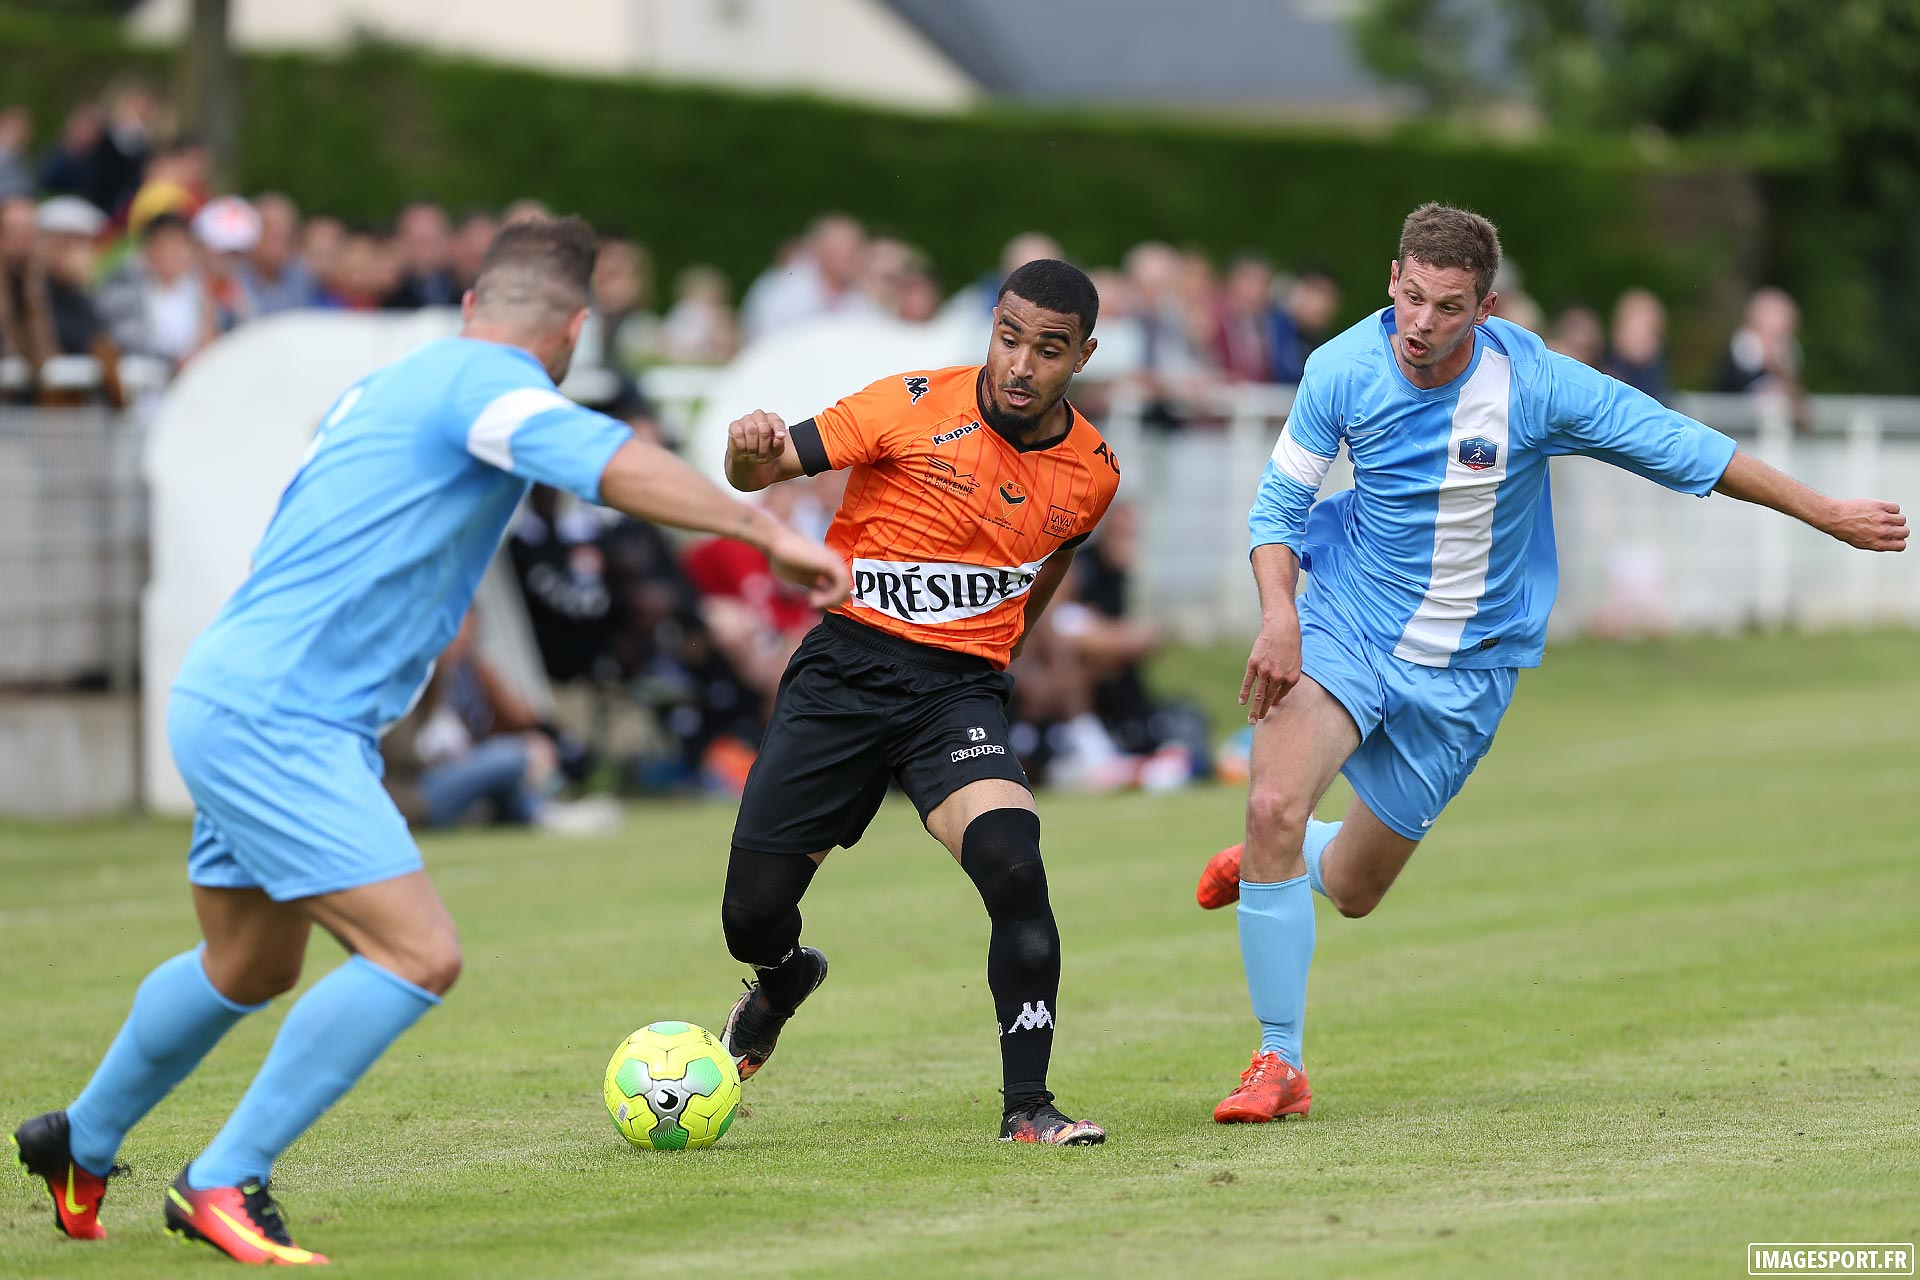 NG_Ligue2_1617_AM1_Laval-liguedumaine (15)